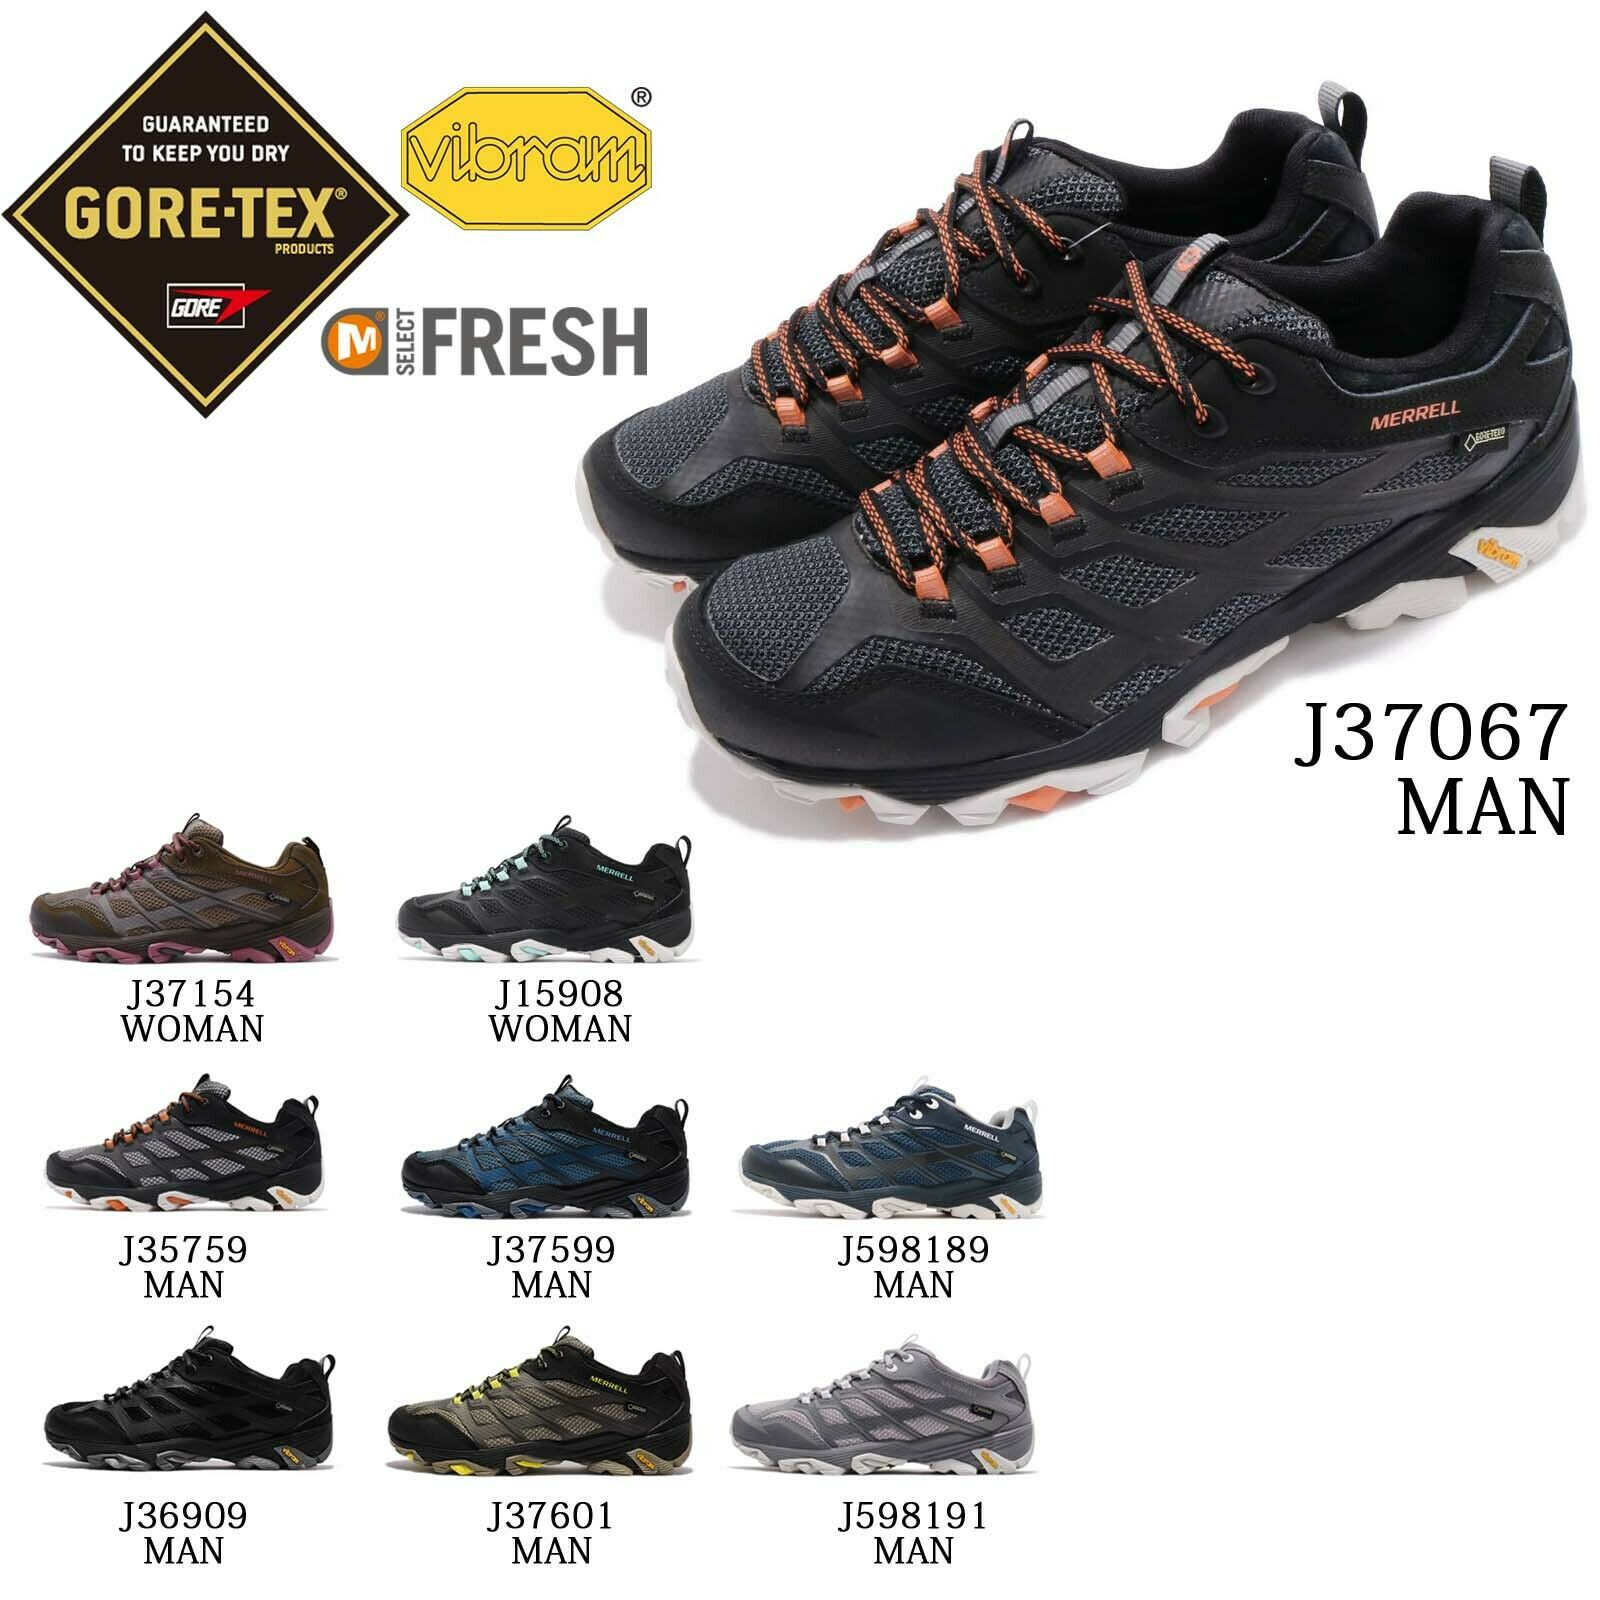 Merrell Moab FST GTX Gore-Tex Vibram Men mujer Outdoors Hiking Trail zapatos Pick 1